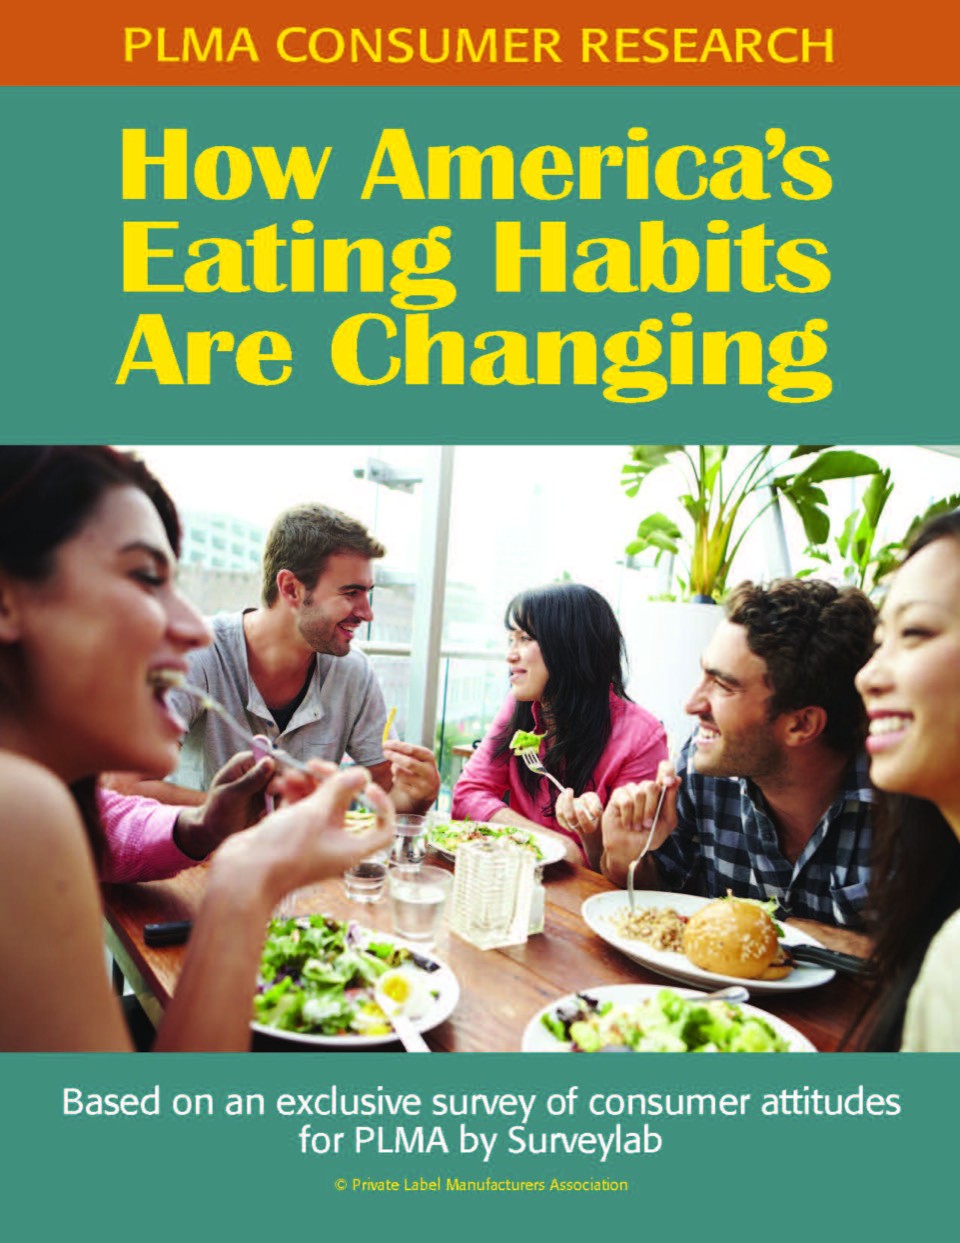 How Americas Eating Habits Are Changing